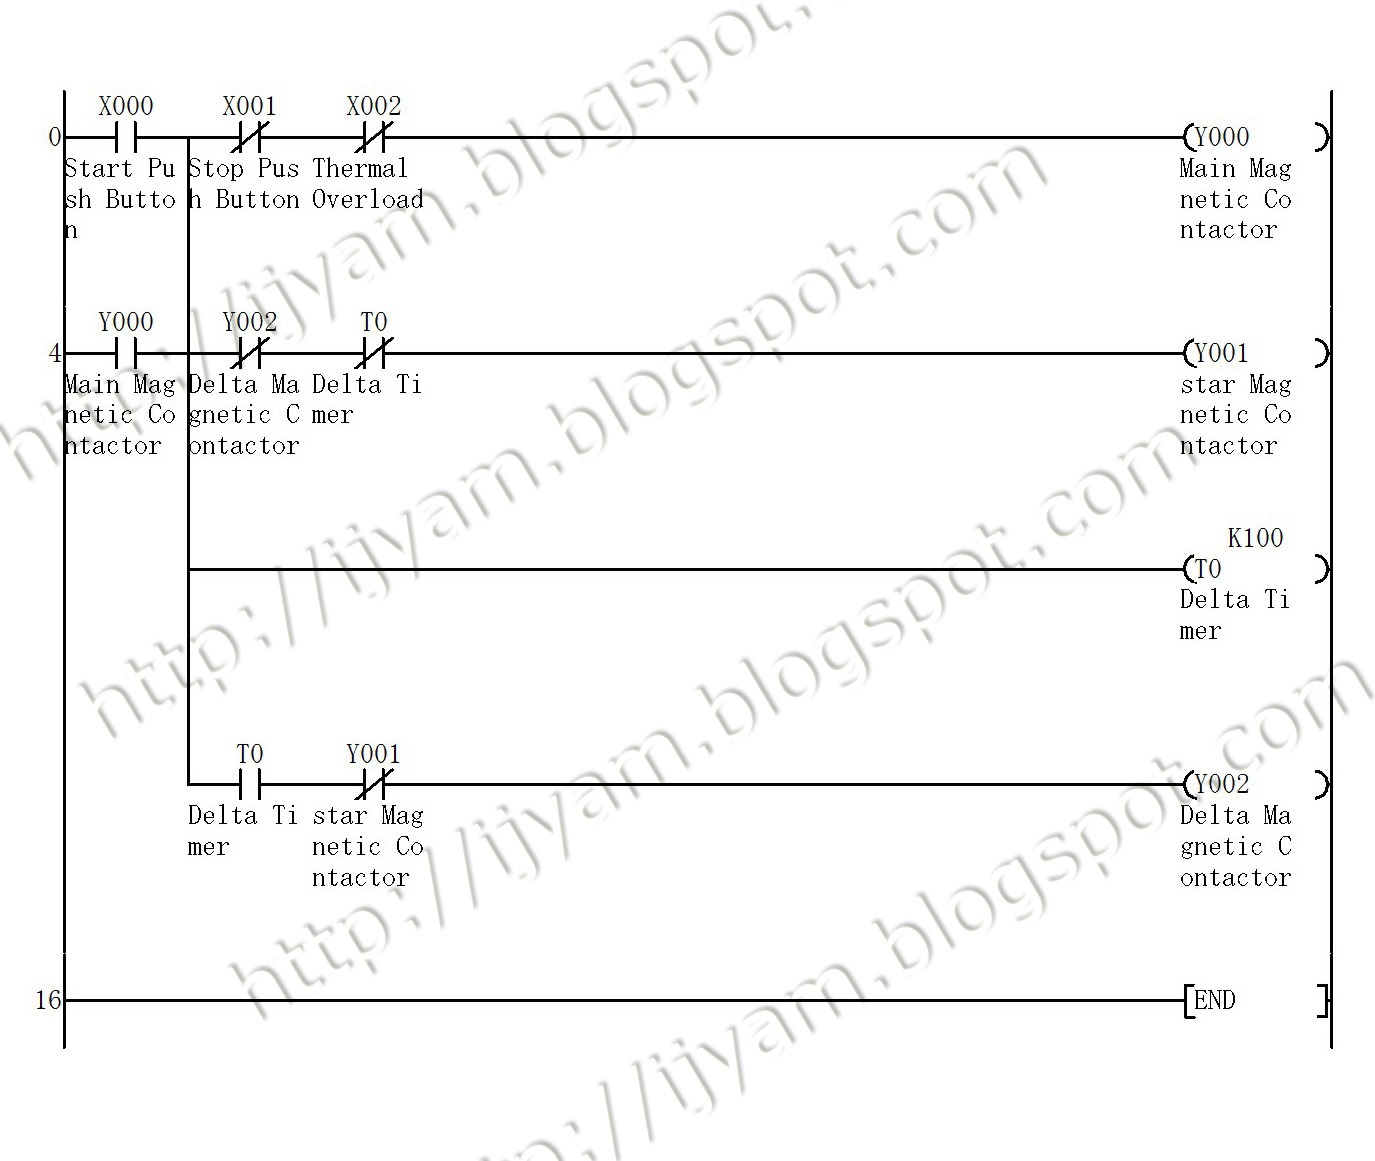 Electrical Wiring Diagram Star Delta Control And Power Circuit Using Mitsubishi Plc Ladder Logic Program For The Motor